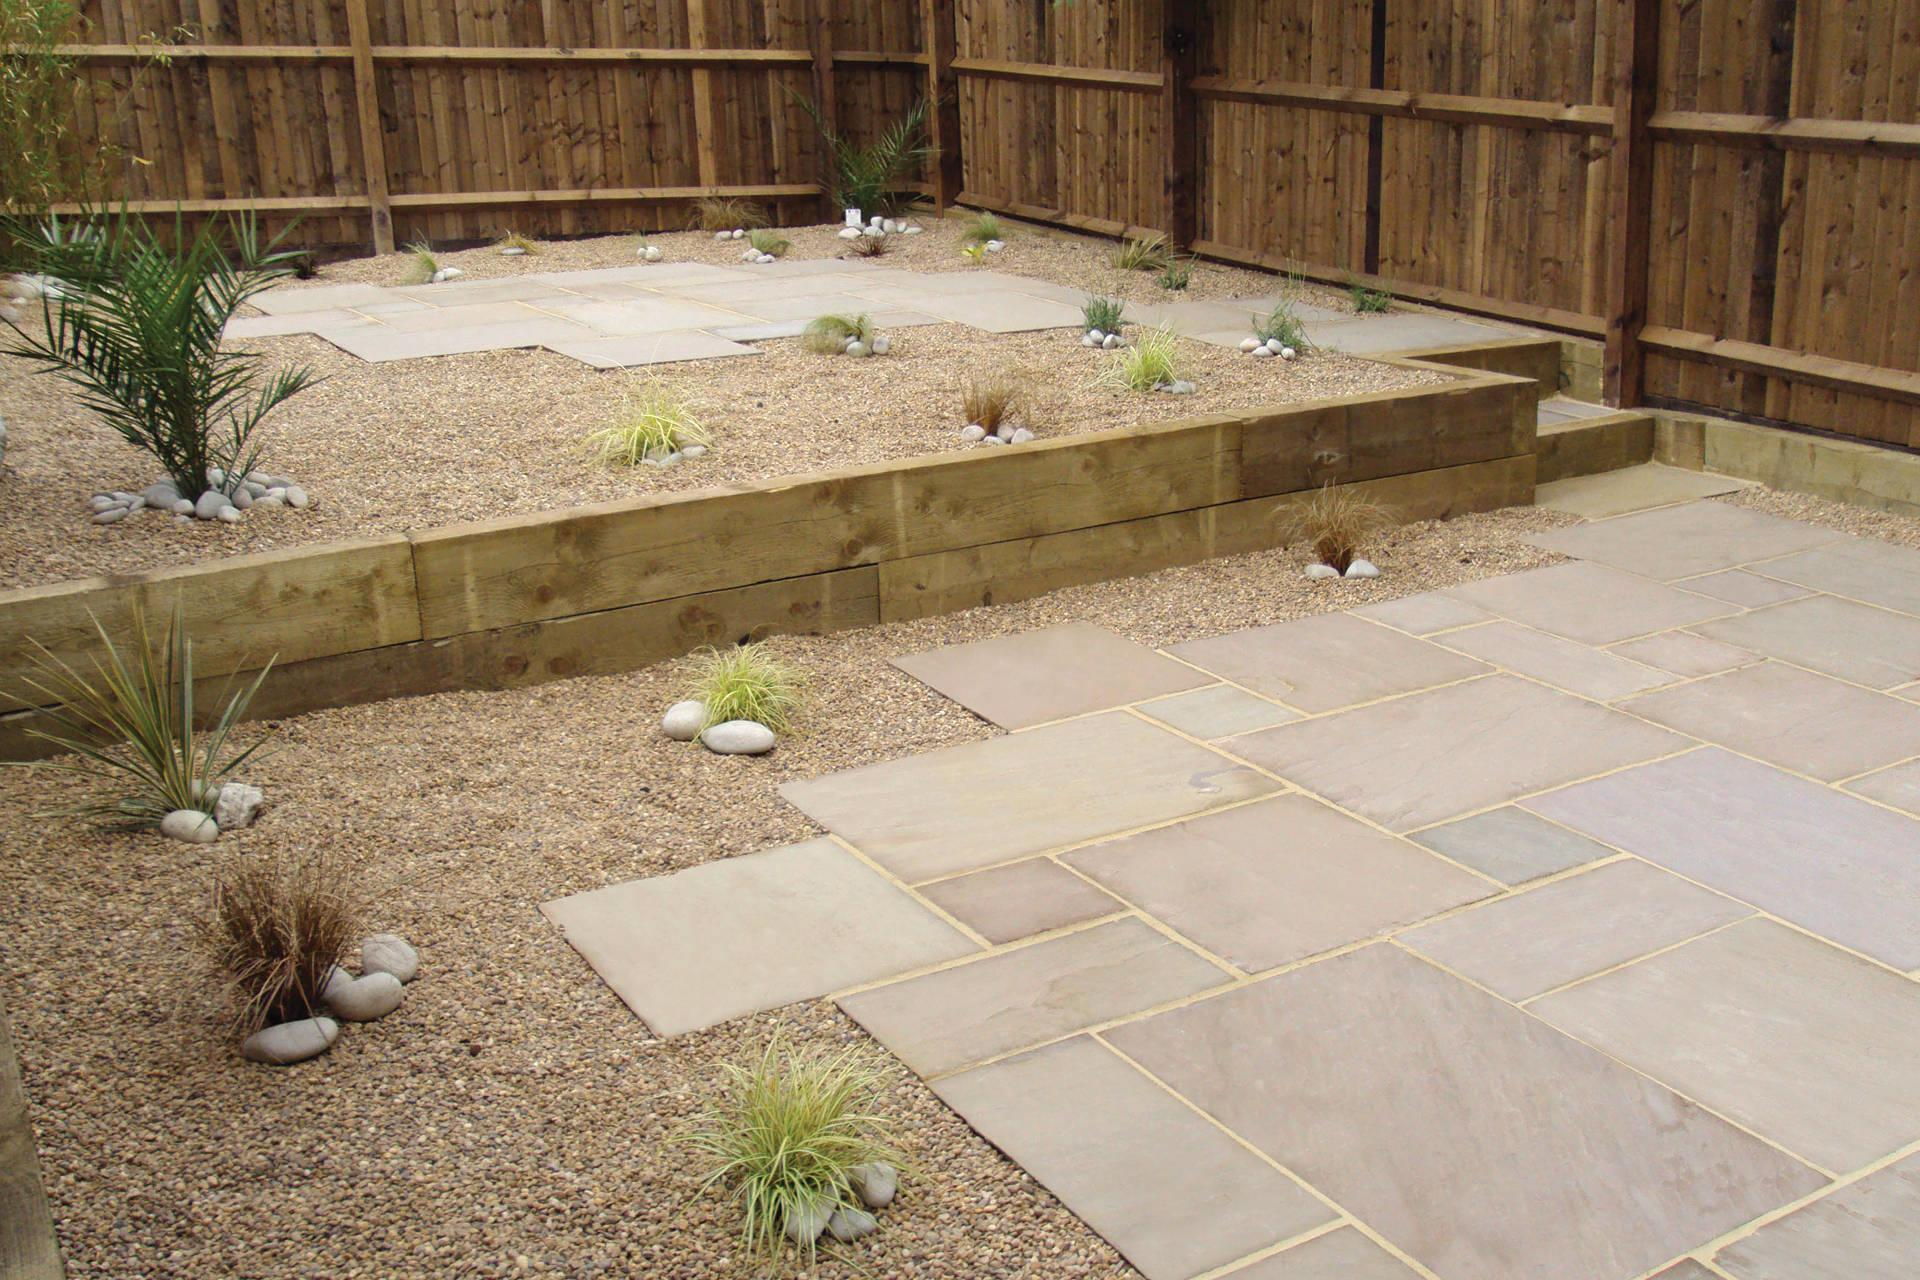 Digby Stone Paving/Patio Slabs #2